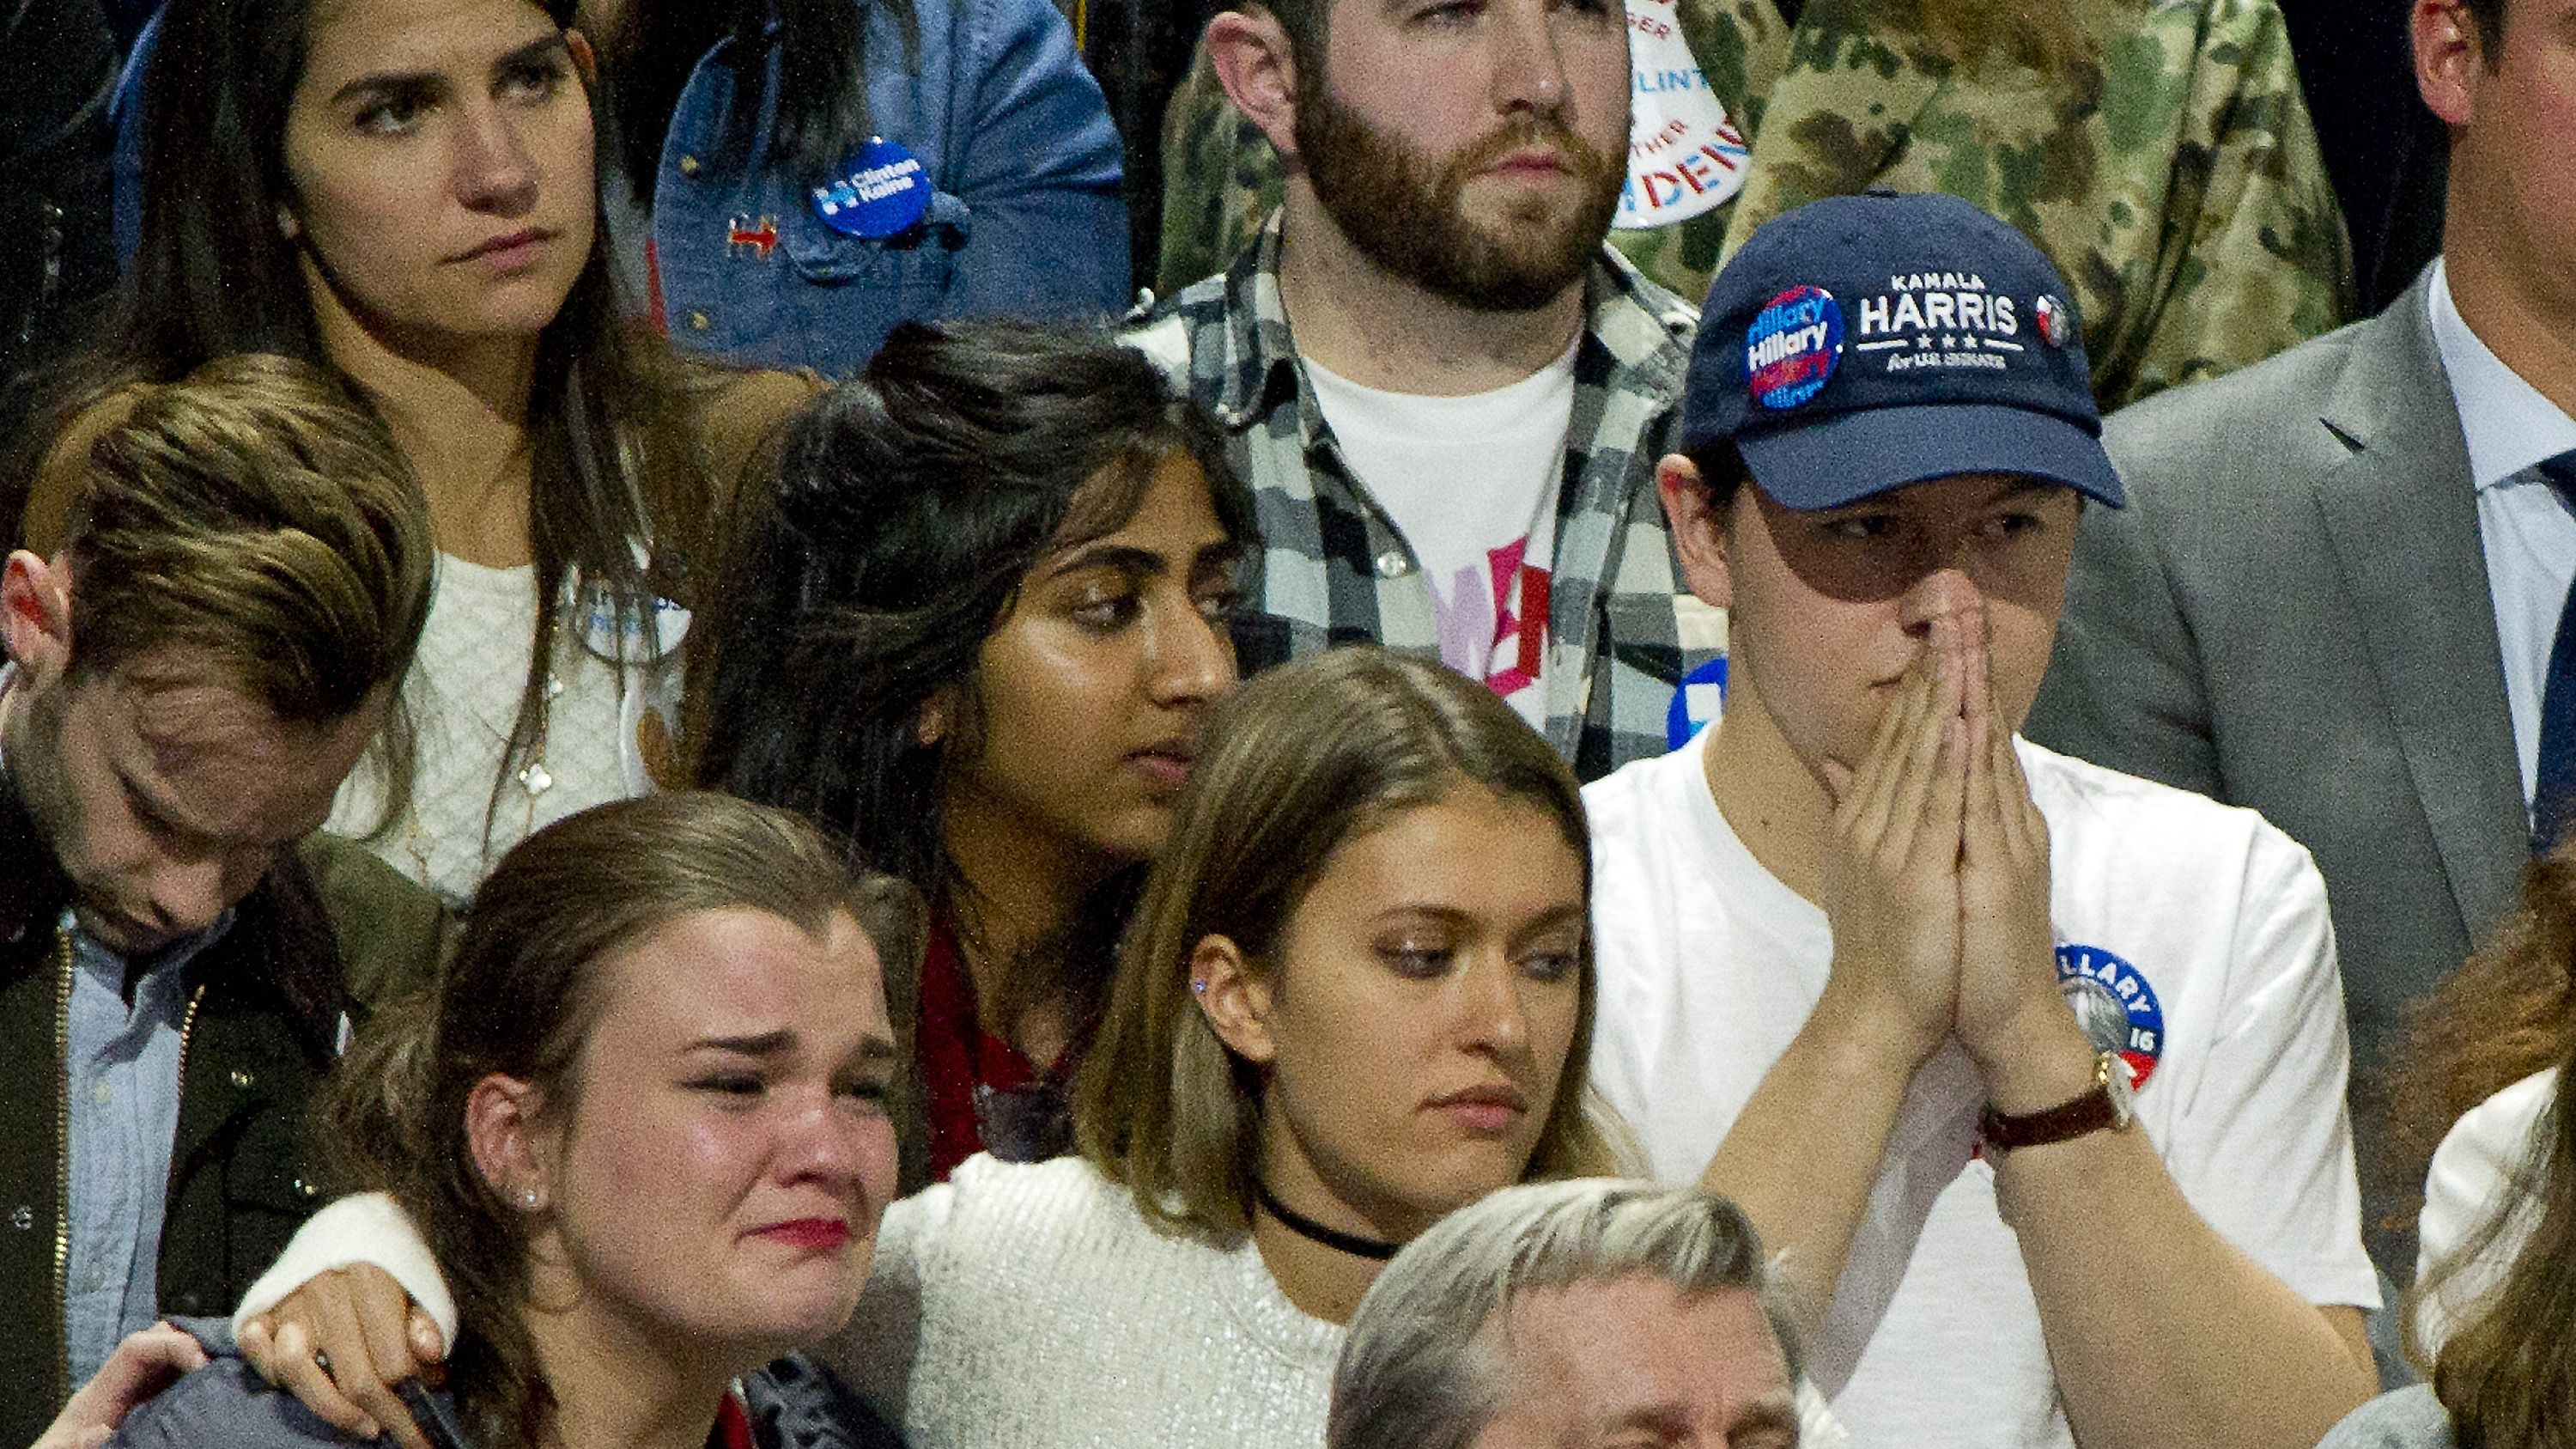 Hillary Clinton supporters are tearful as North Carolina is called for Donald Trump at the Clinton Election Night Event at the Jacob K. Javits Convention Center in New York, New York on Tuesday, November 8, 2016.